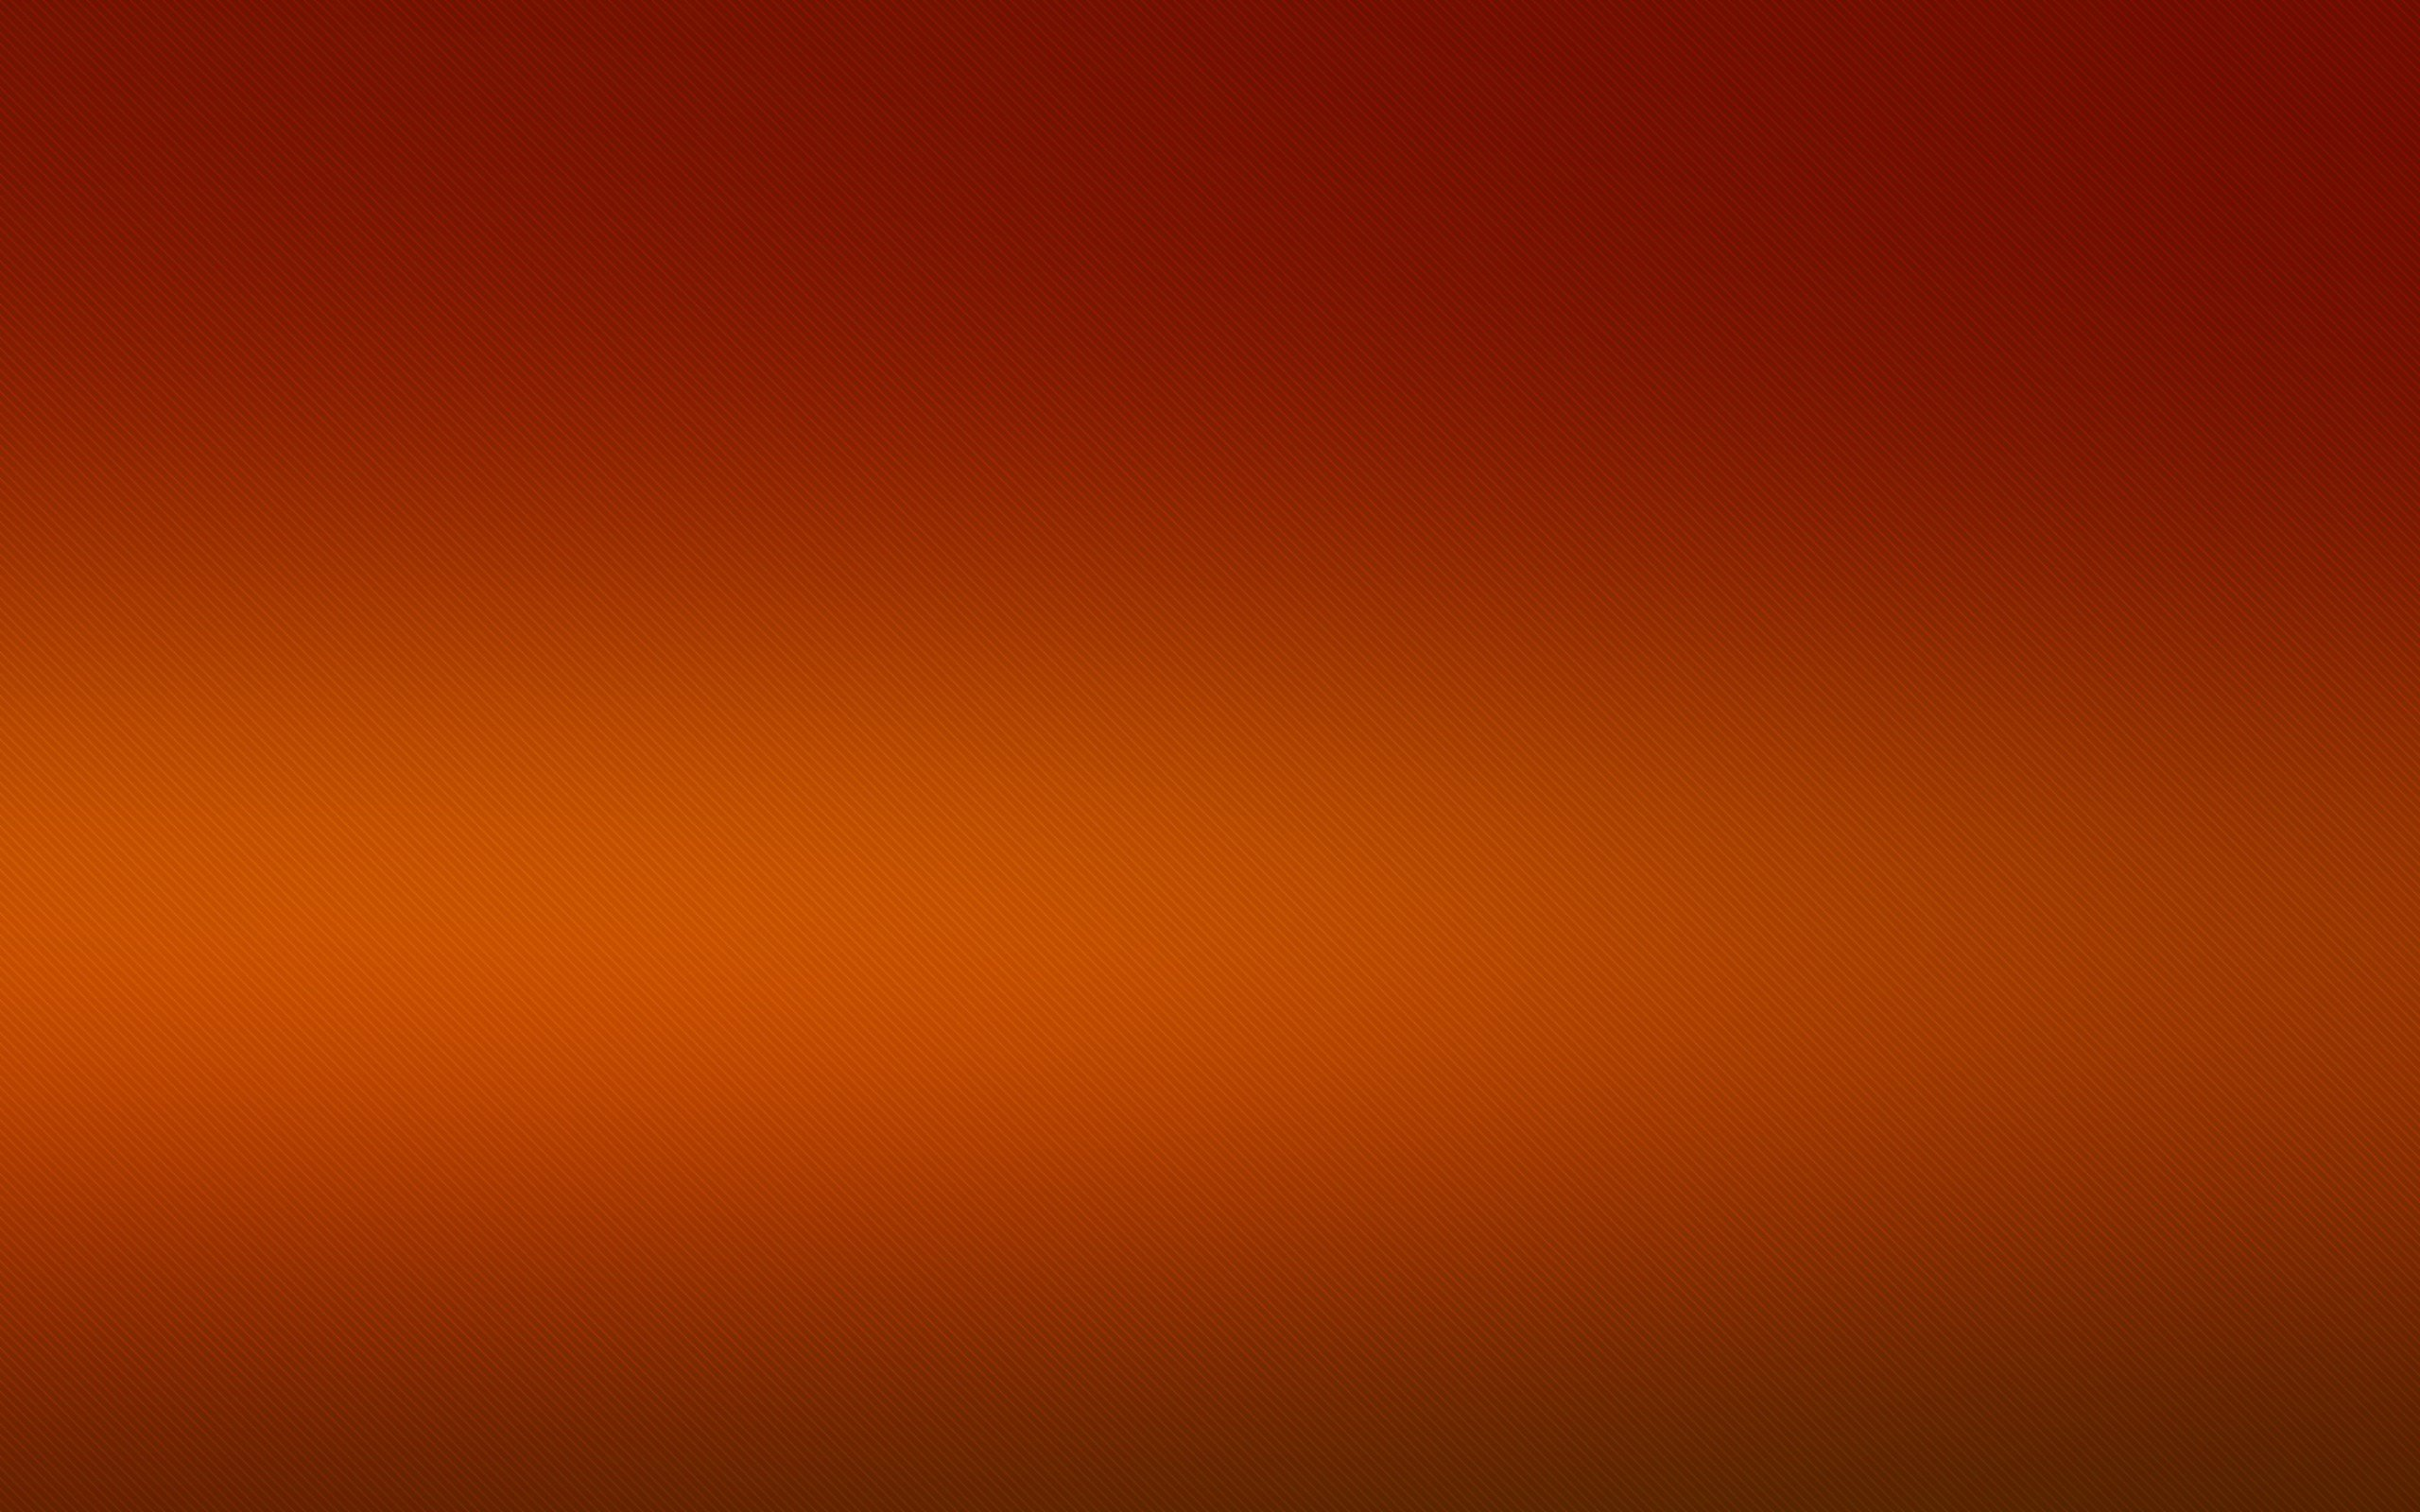 640x1136 Pink-orange Solid Color Background | Phone Backgrounds ...